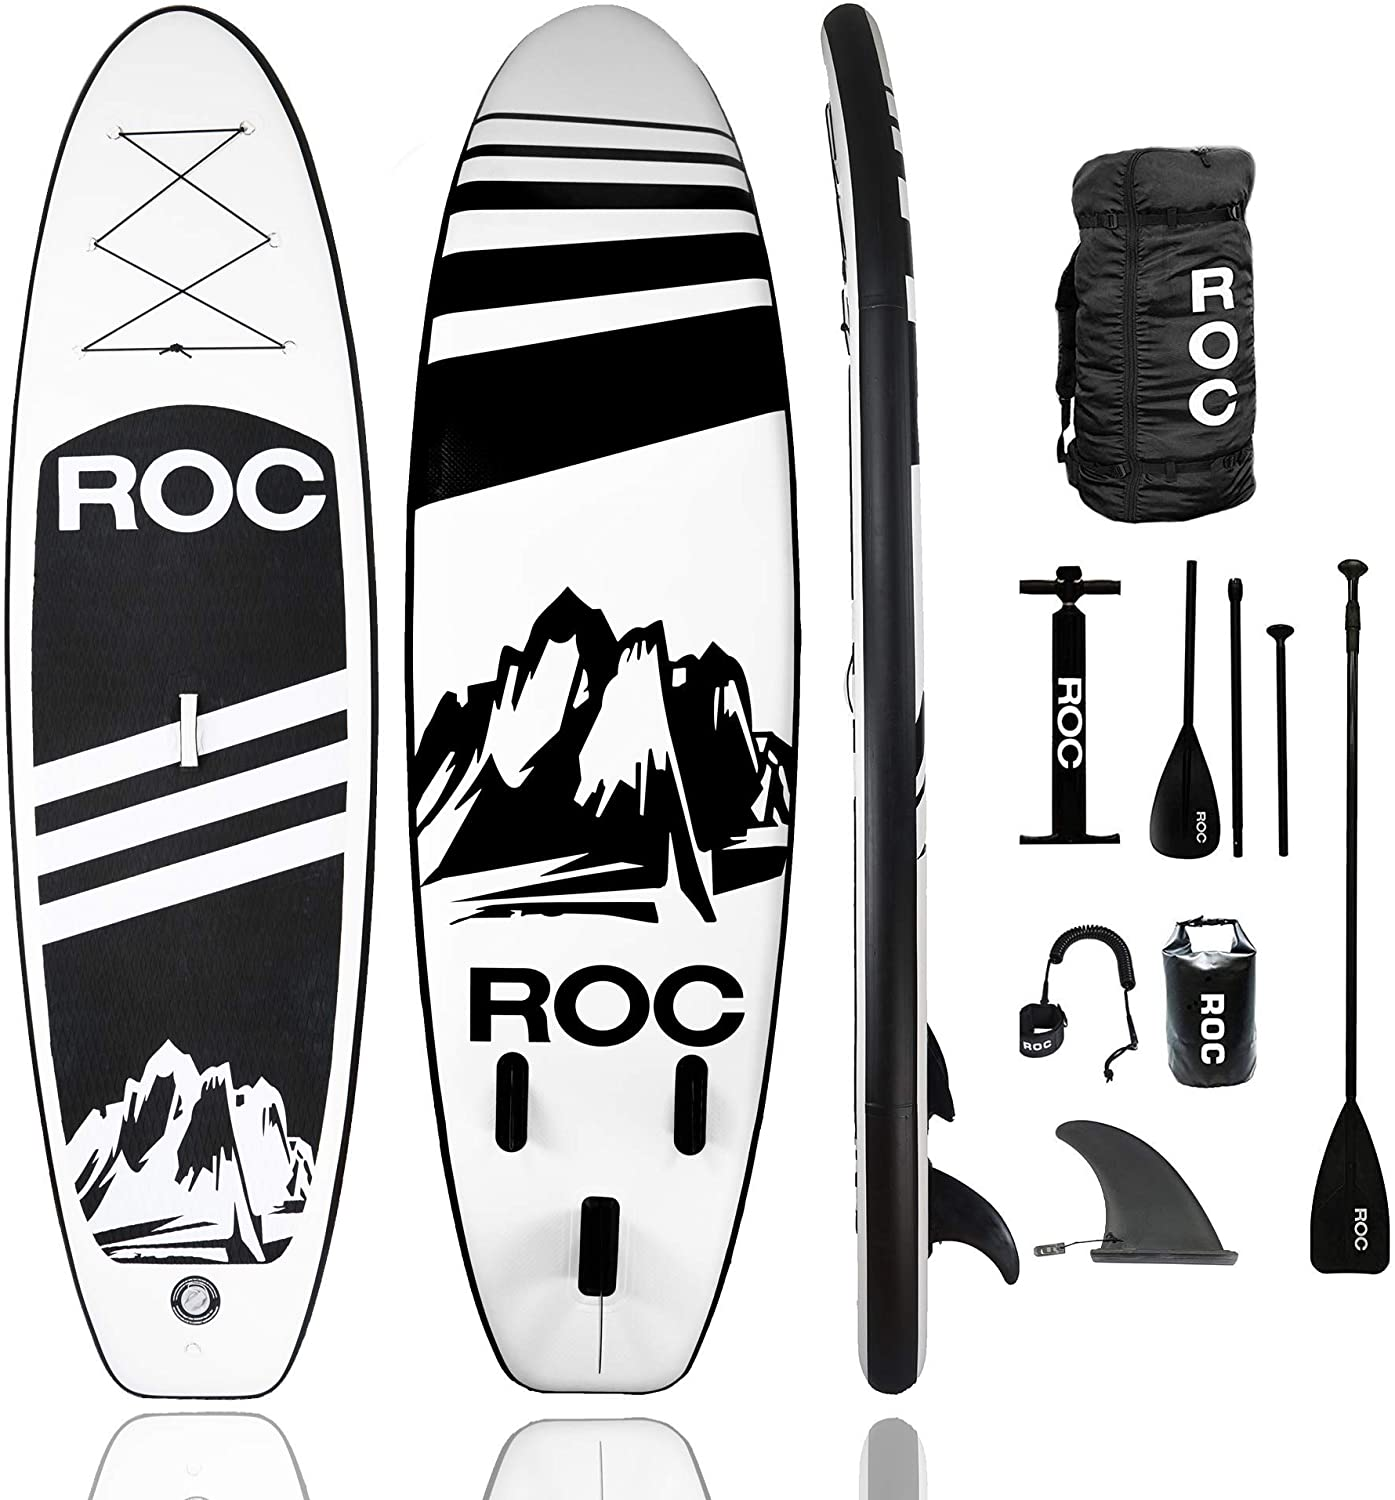 Roc Inflatable